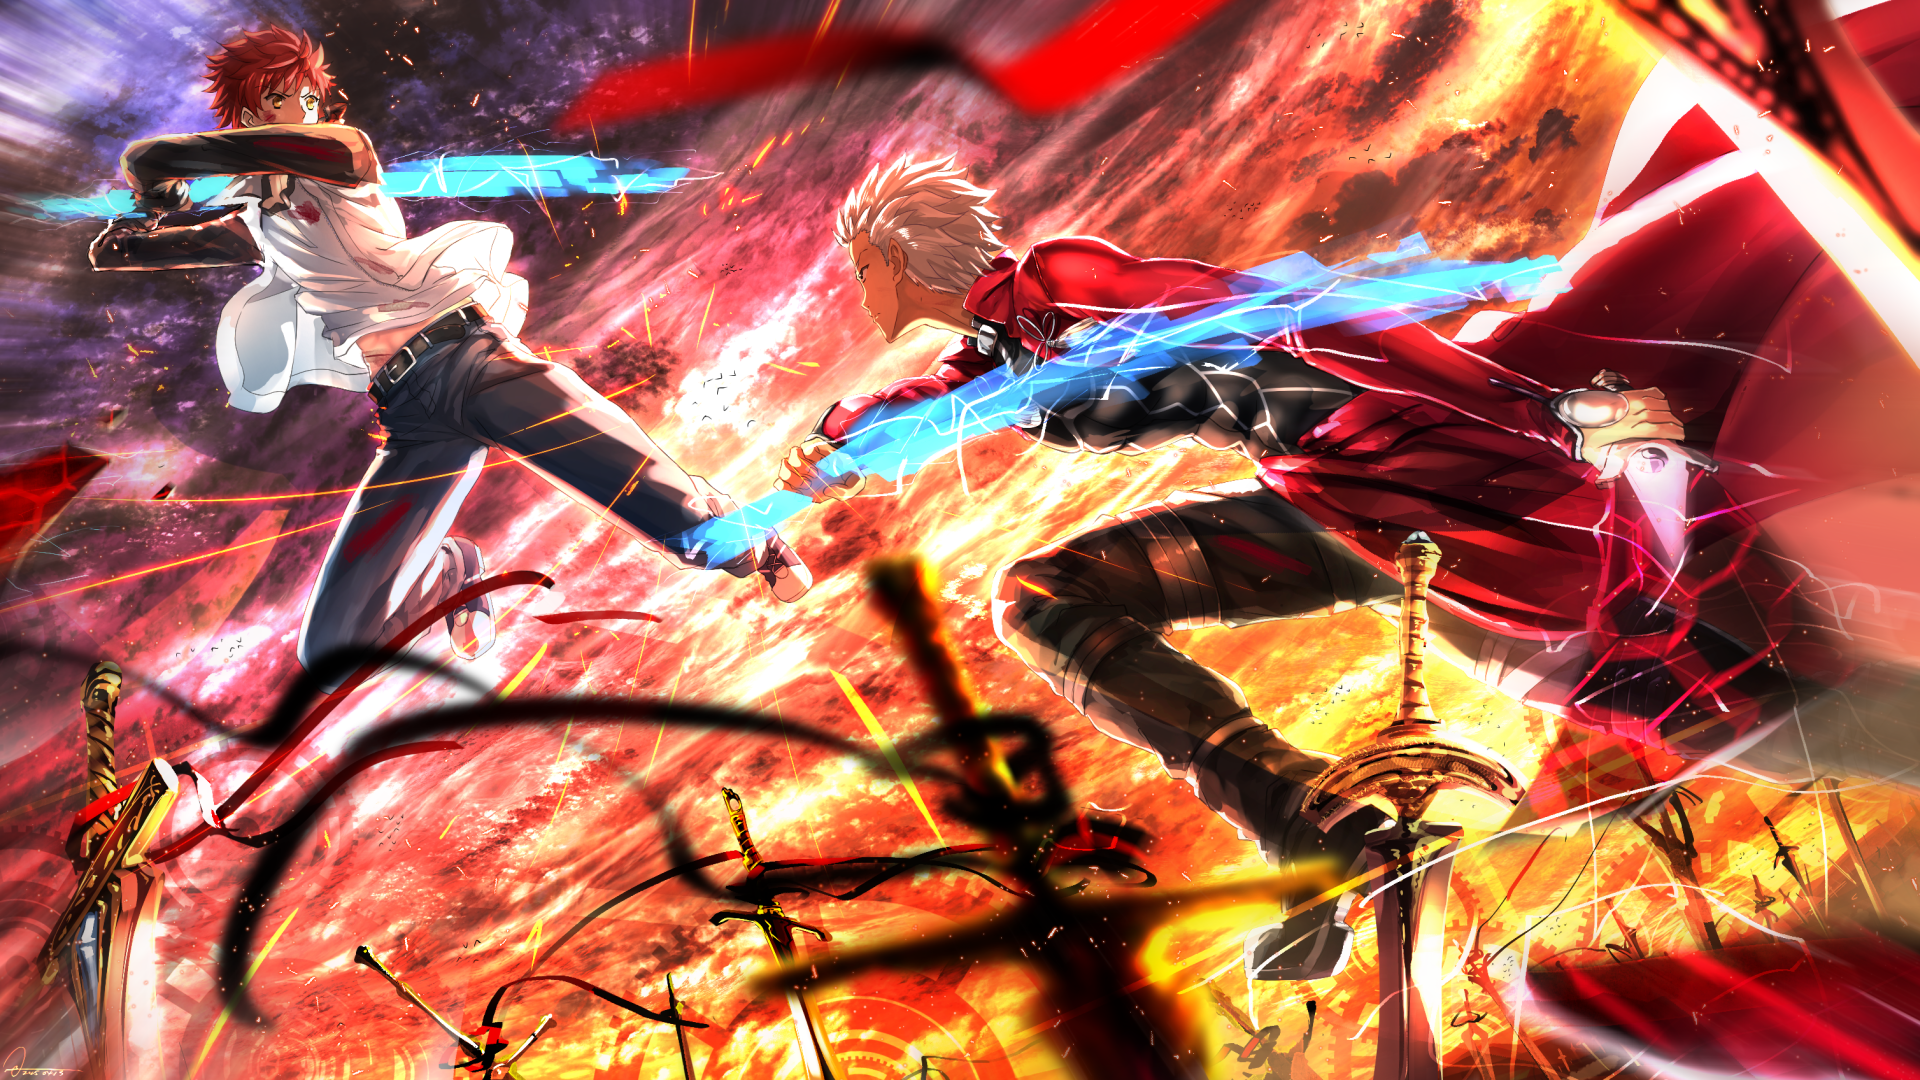 13 Fate/Stay Night: Unlimited Blade Works HD Wallpapers